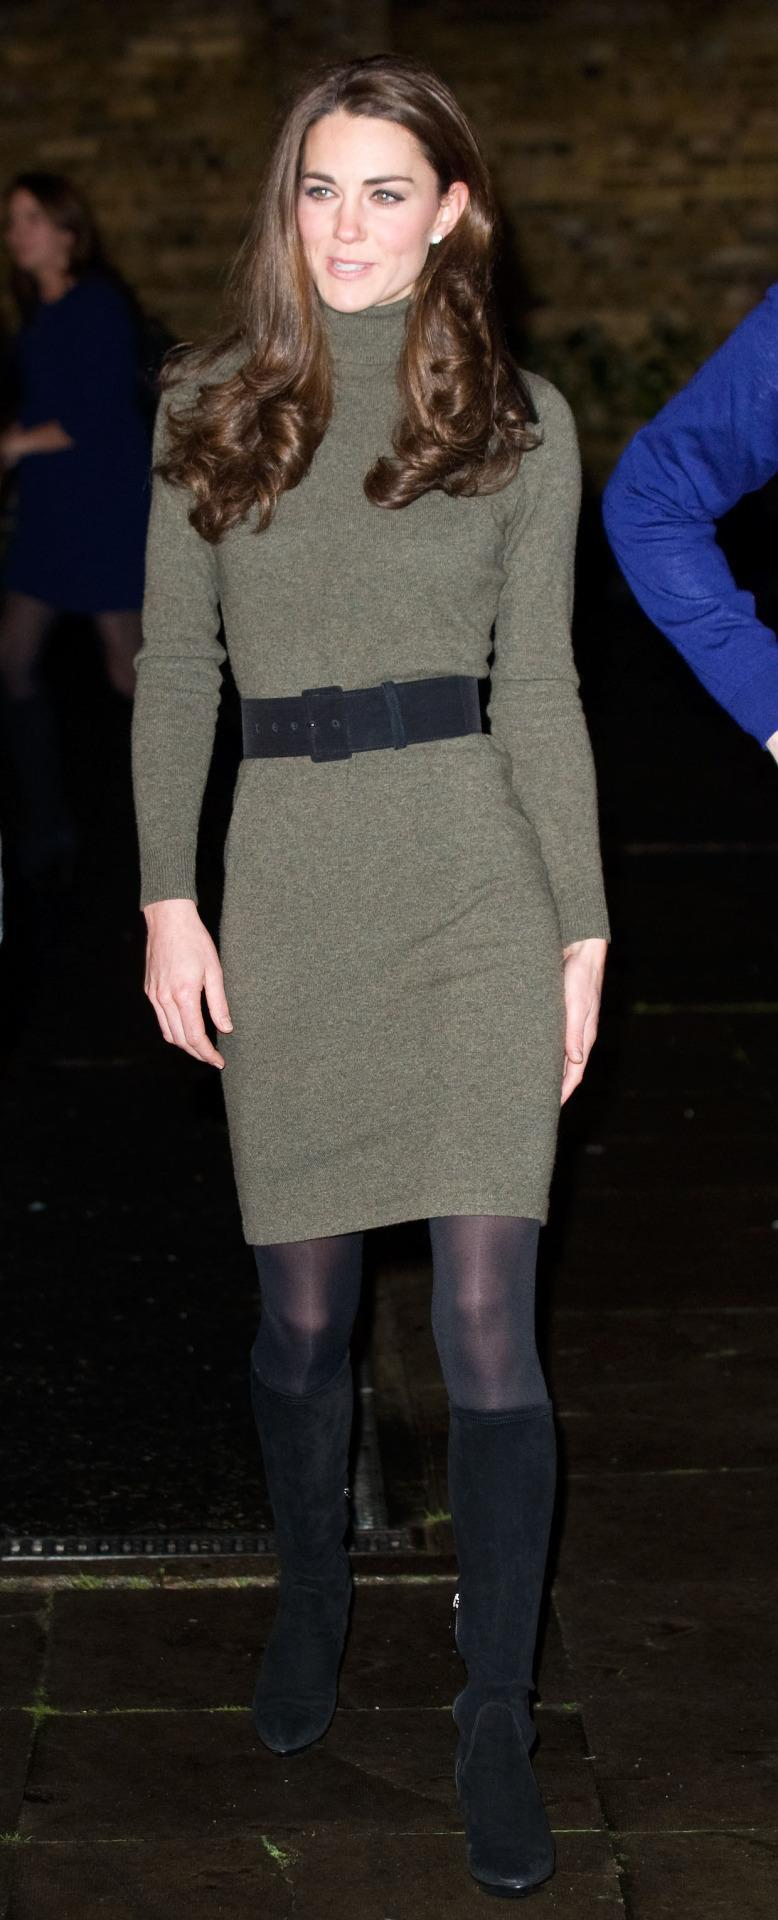 <p>Kate donned an olive Ralph Lauren knitted dress for a charity engagement. She accessorised with a black belt and Aquatalia heeled boots.</p><p><i>[Photo: PA]</i></p>